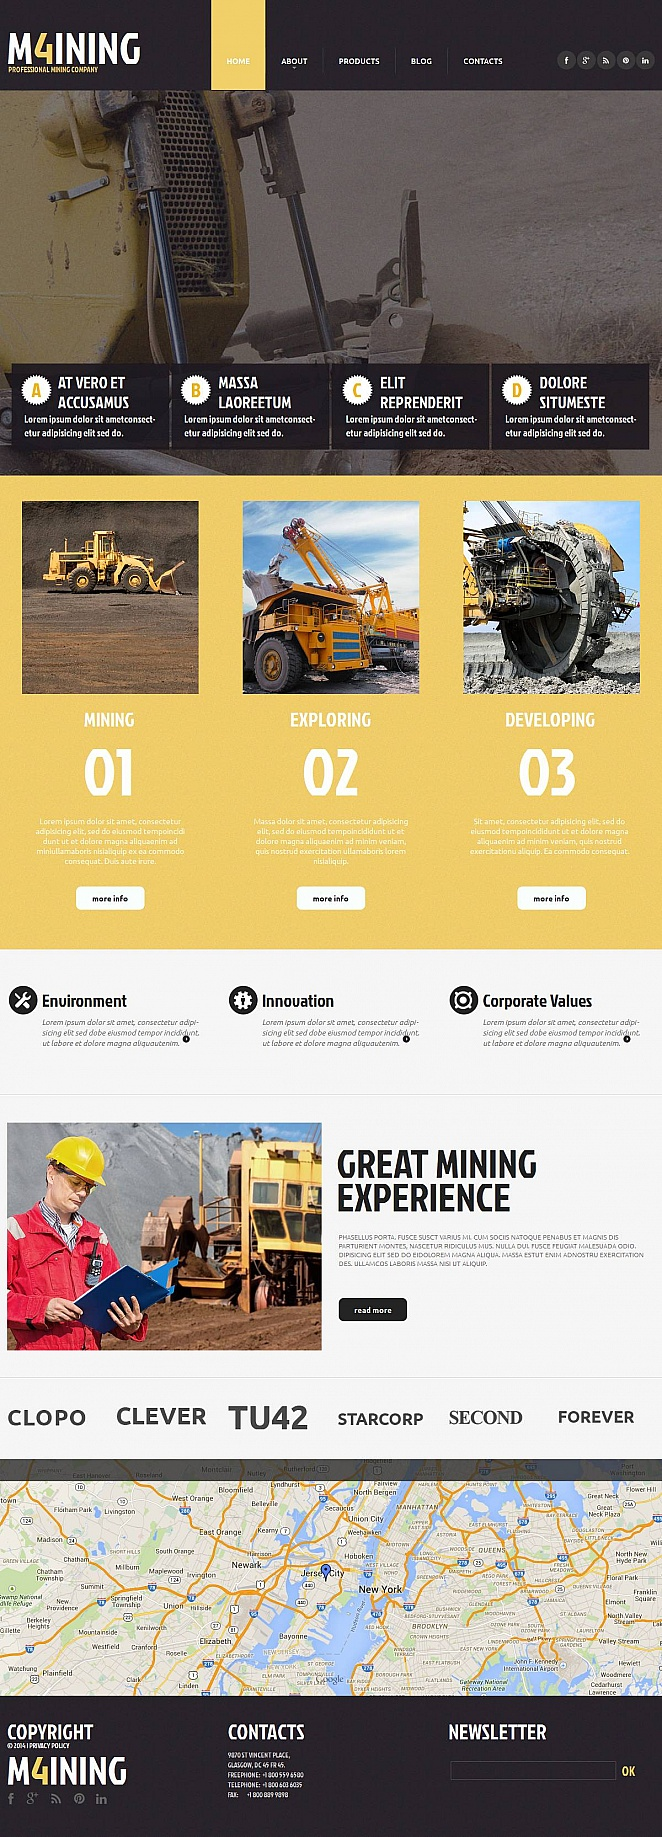 Industrial Website Template with Creative Design - image